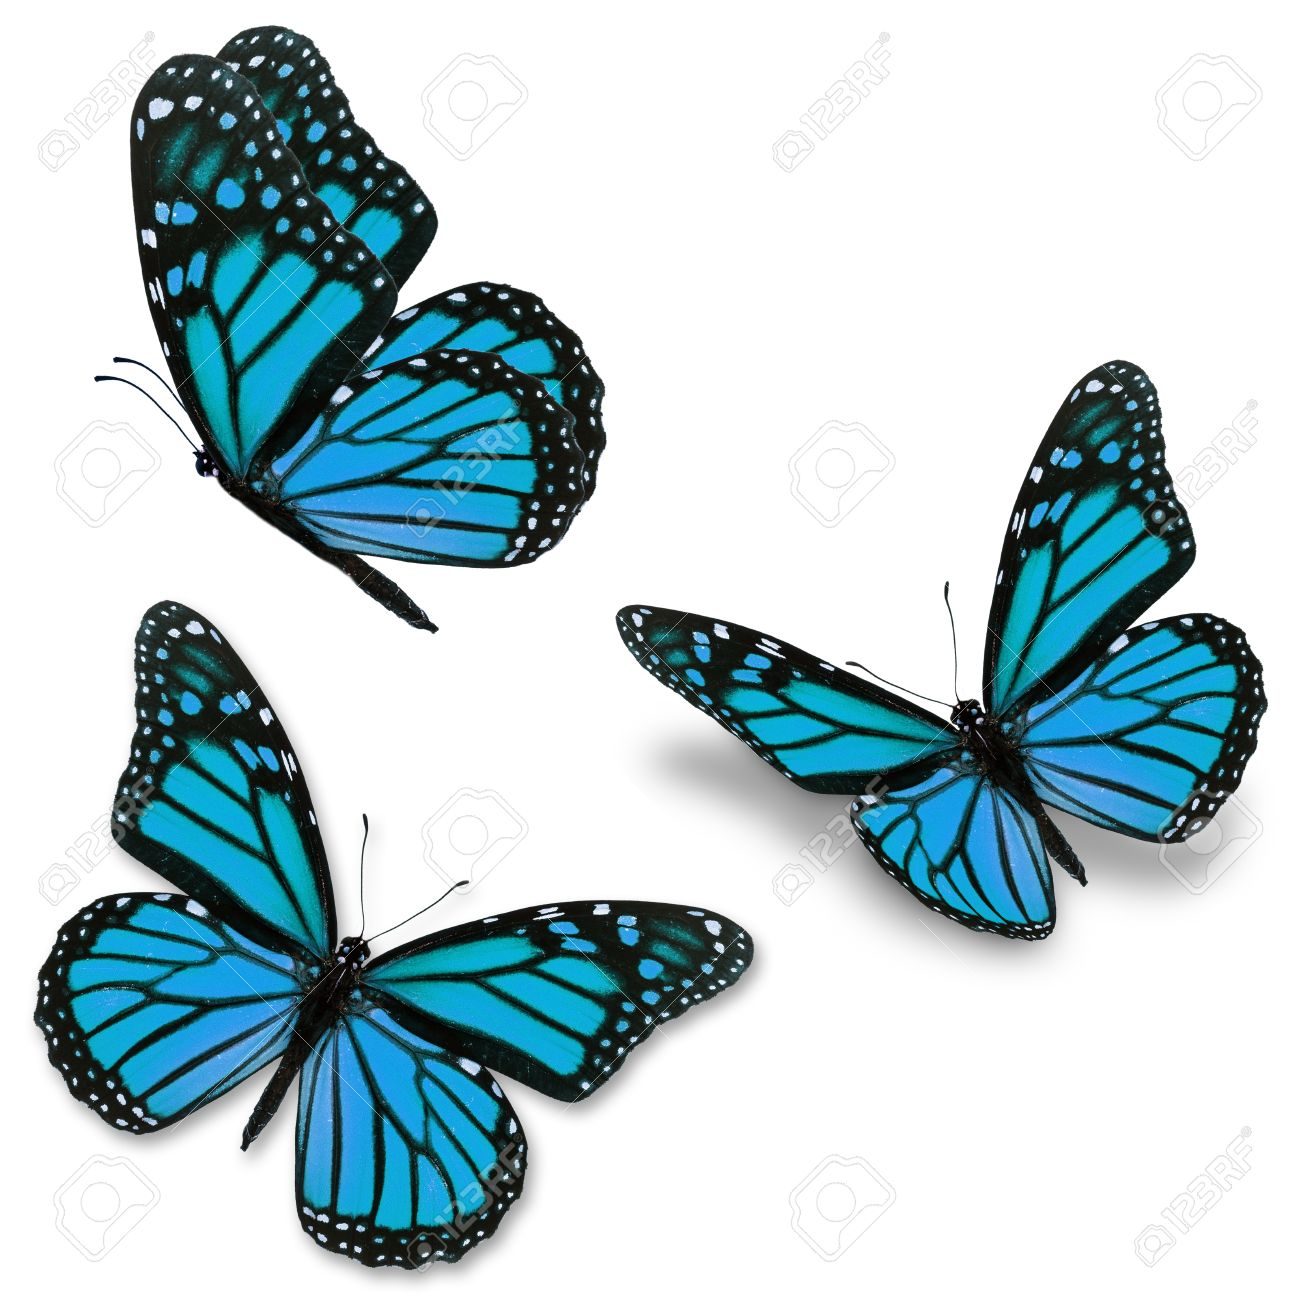 three blue monarch butterfly isolated on white background stock